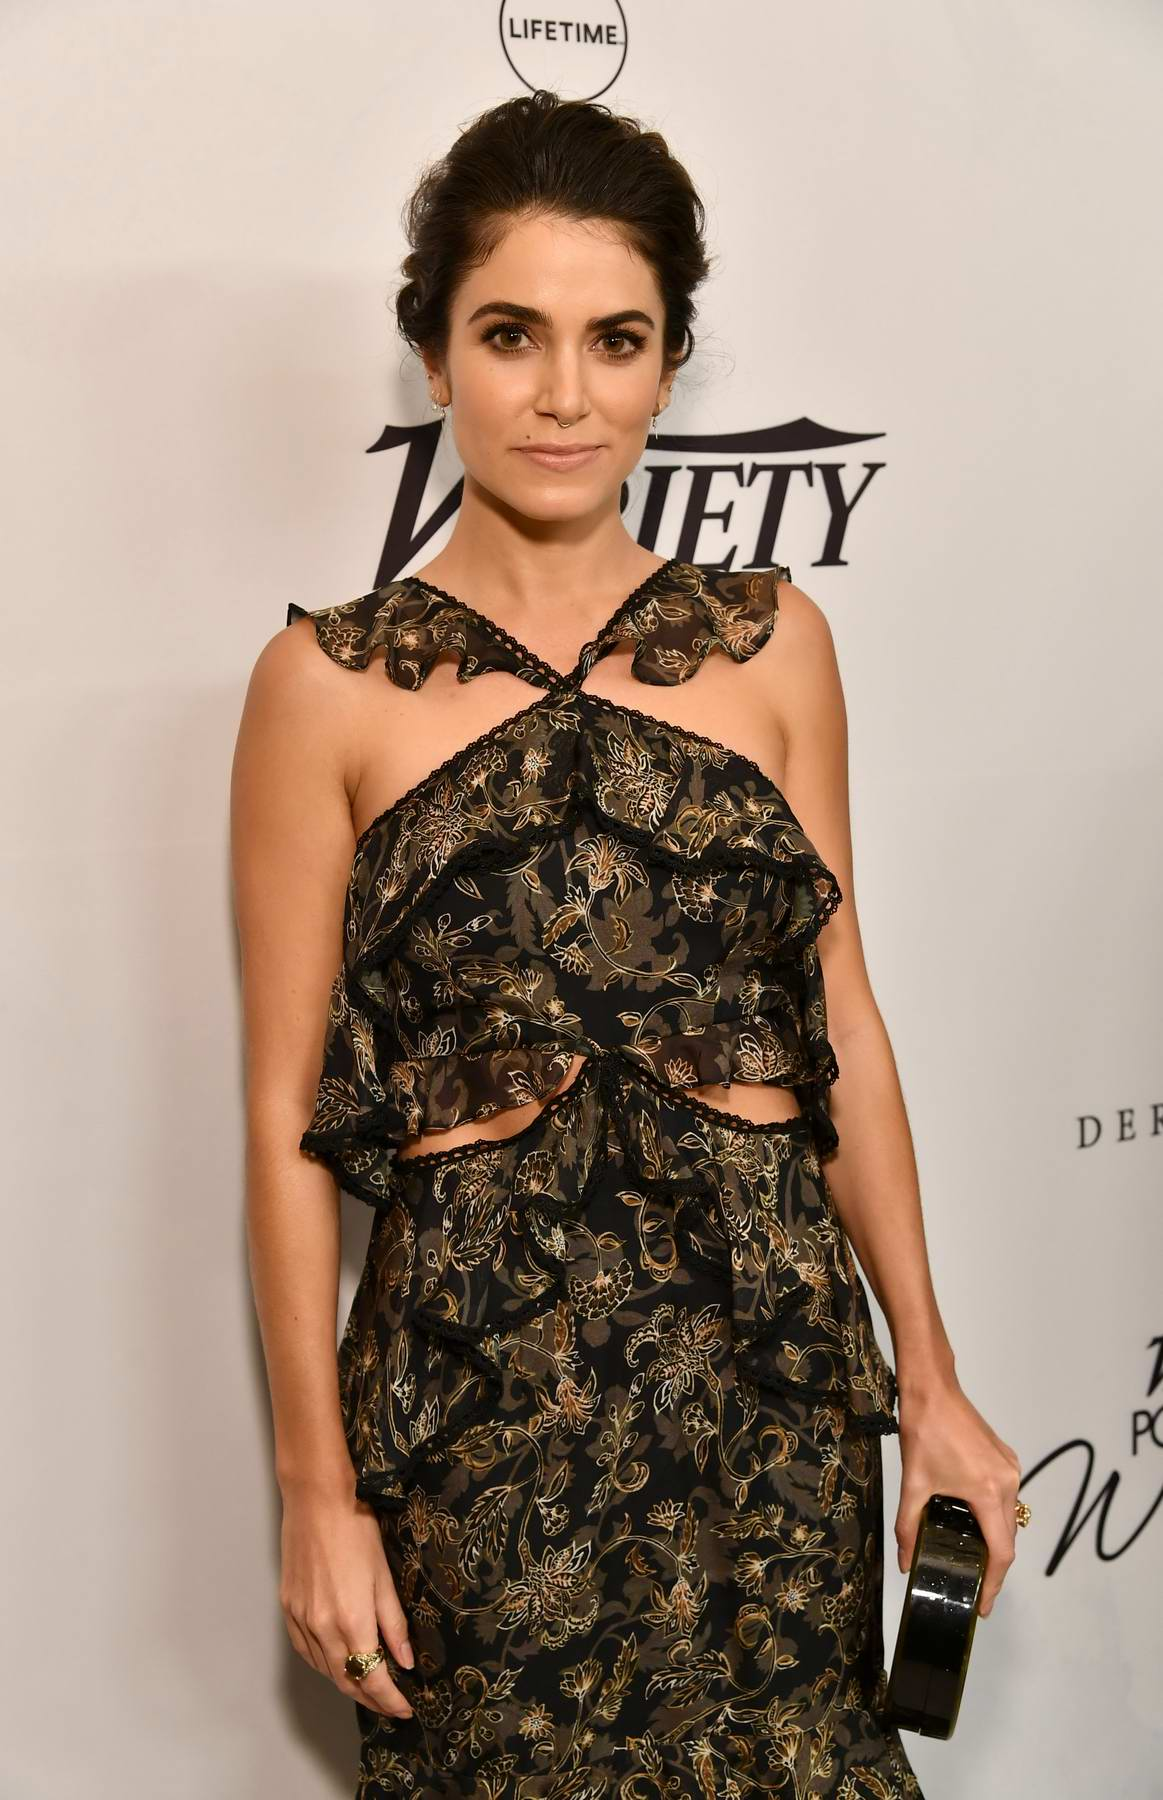 Nikki Reed at the Variety's Power of Women presented by Lifetime in Los Angeles